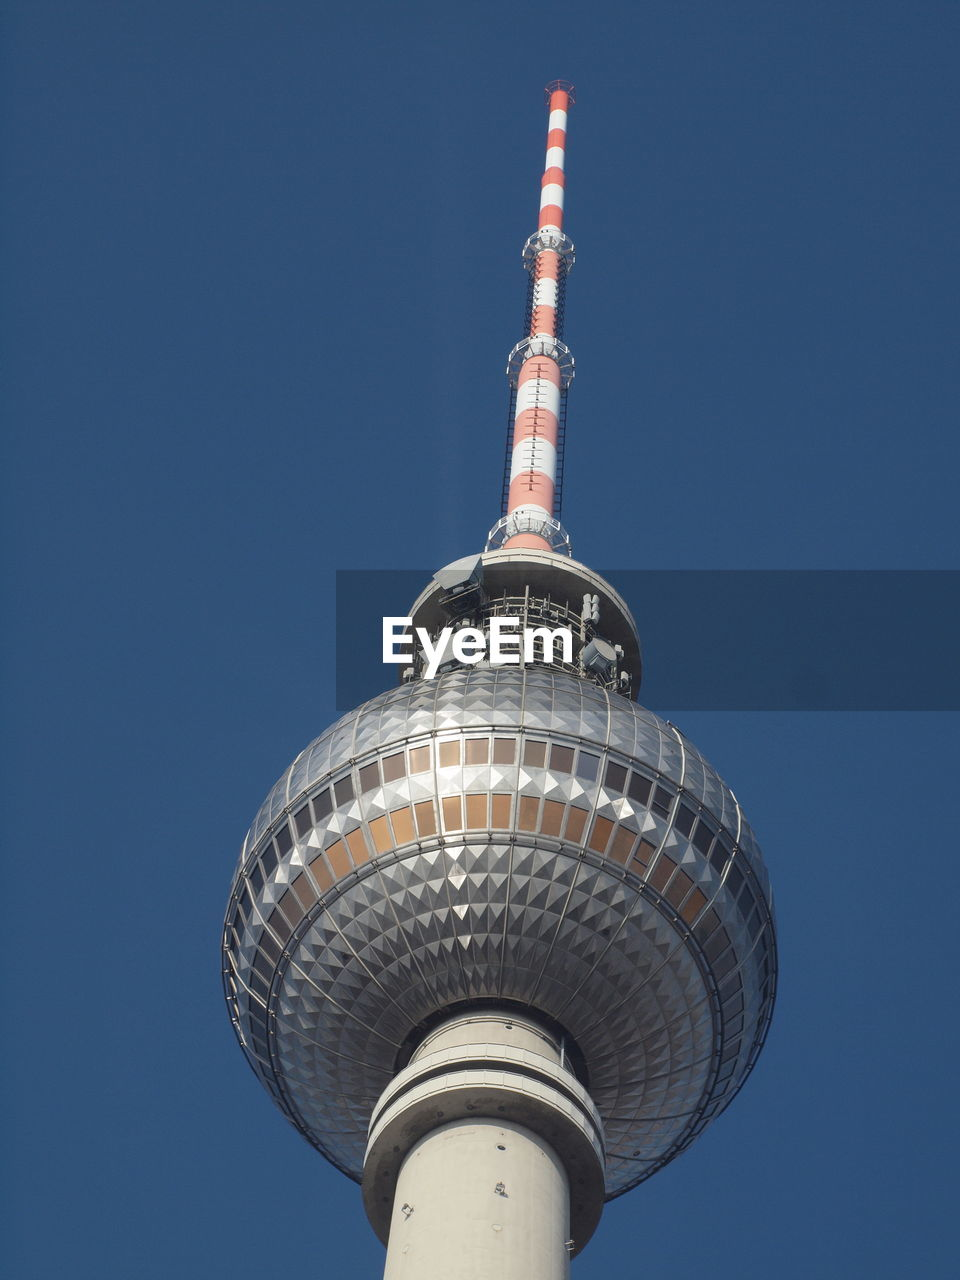 architecture, tall - high, tower, communication, clear sky, built structure, building exterior, travel destinations, blue, low angle view, television tower, outdoors, no people, travel, city, day, skyscraper, sky